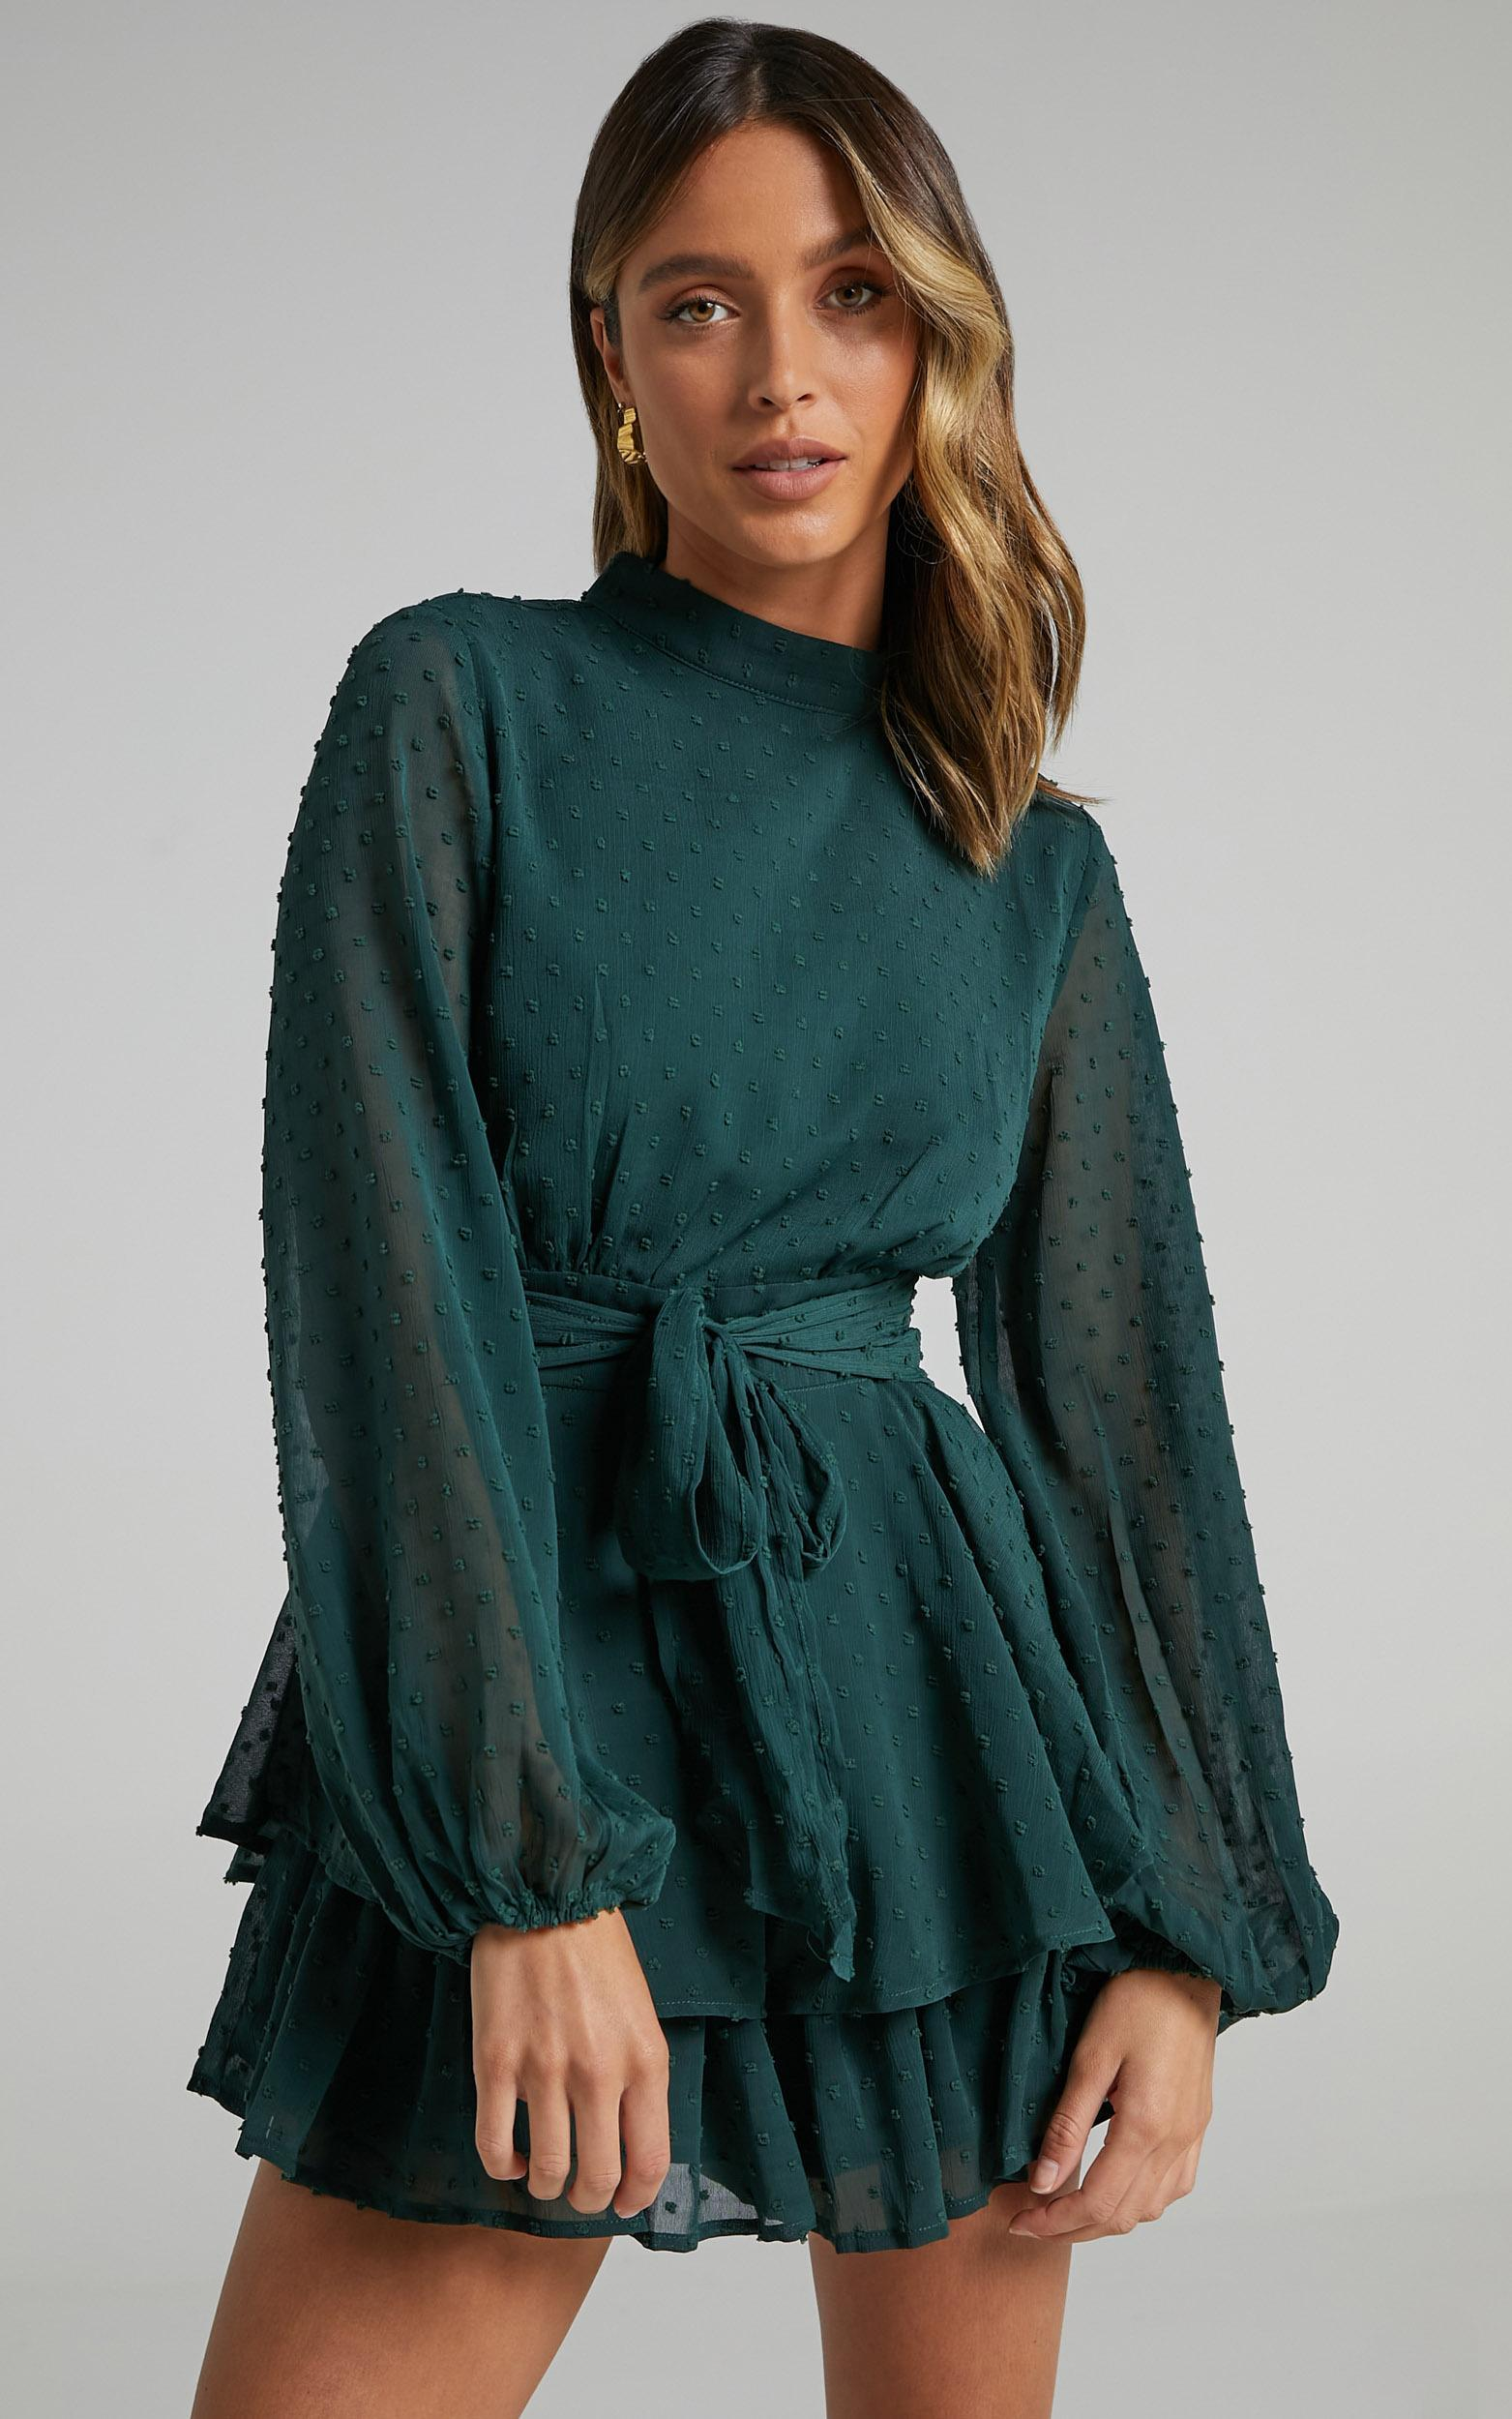 Bottom Of Your Heart Playsuit In Emerald - 4 (XXS), GRN7, hi-res image number null